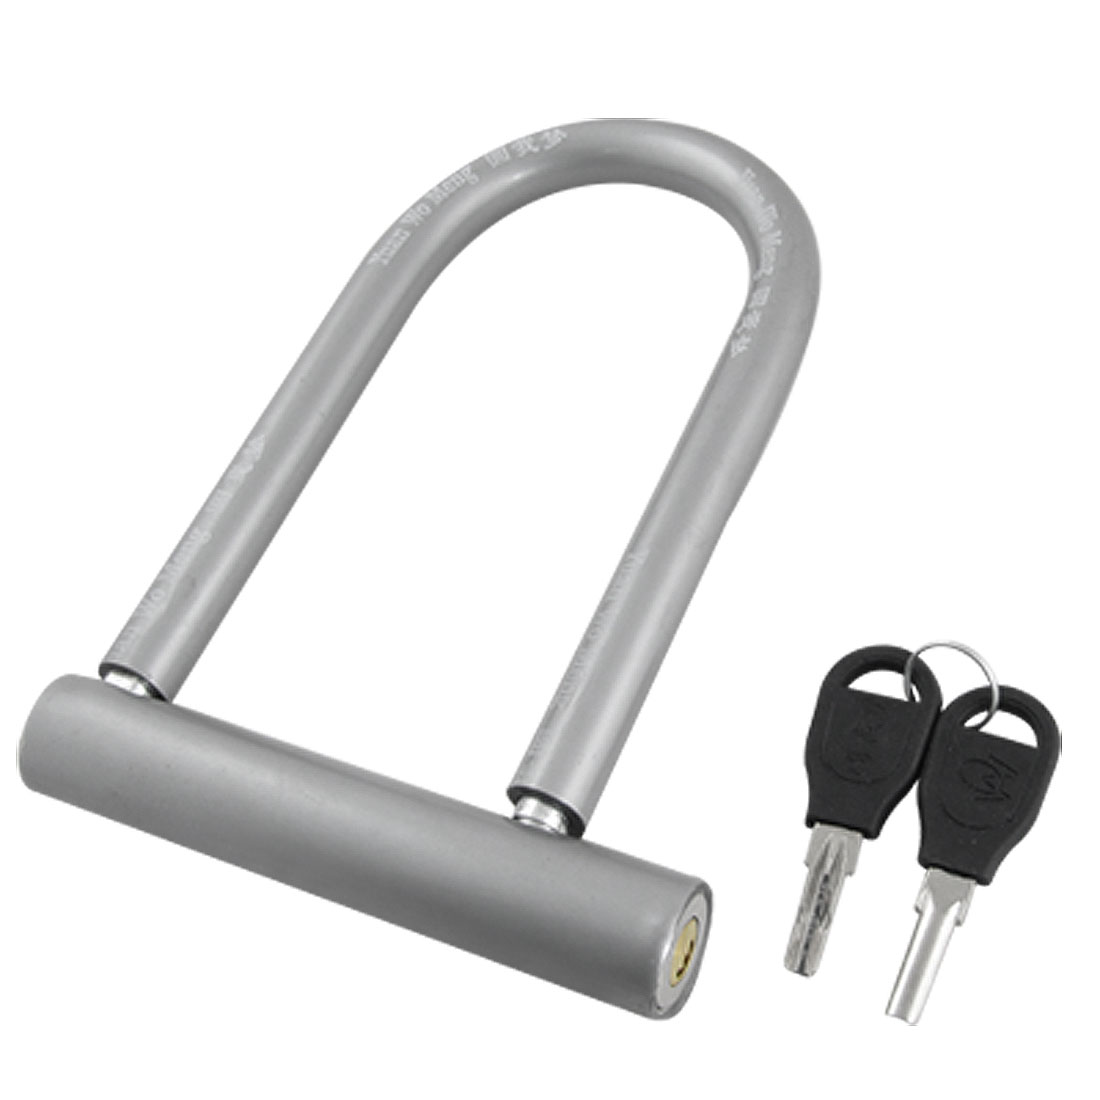 Unique Bargains Gray Metal Plastic Cover Bike Safeguard U Design Lock at Sears.com